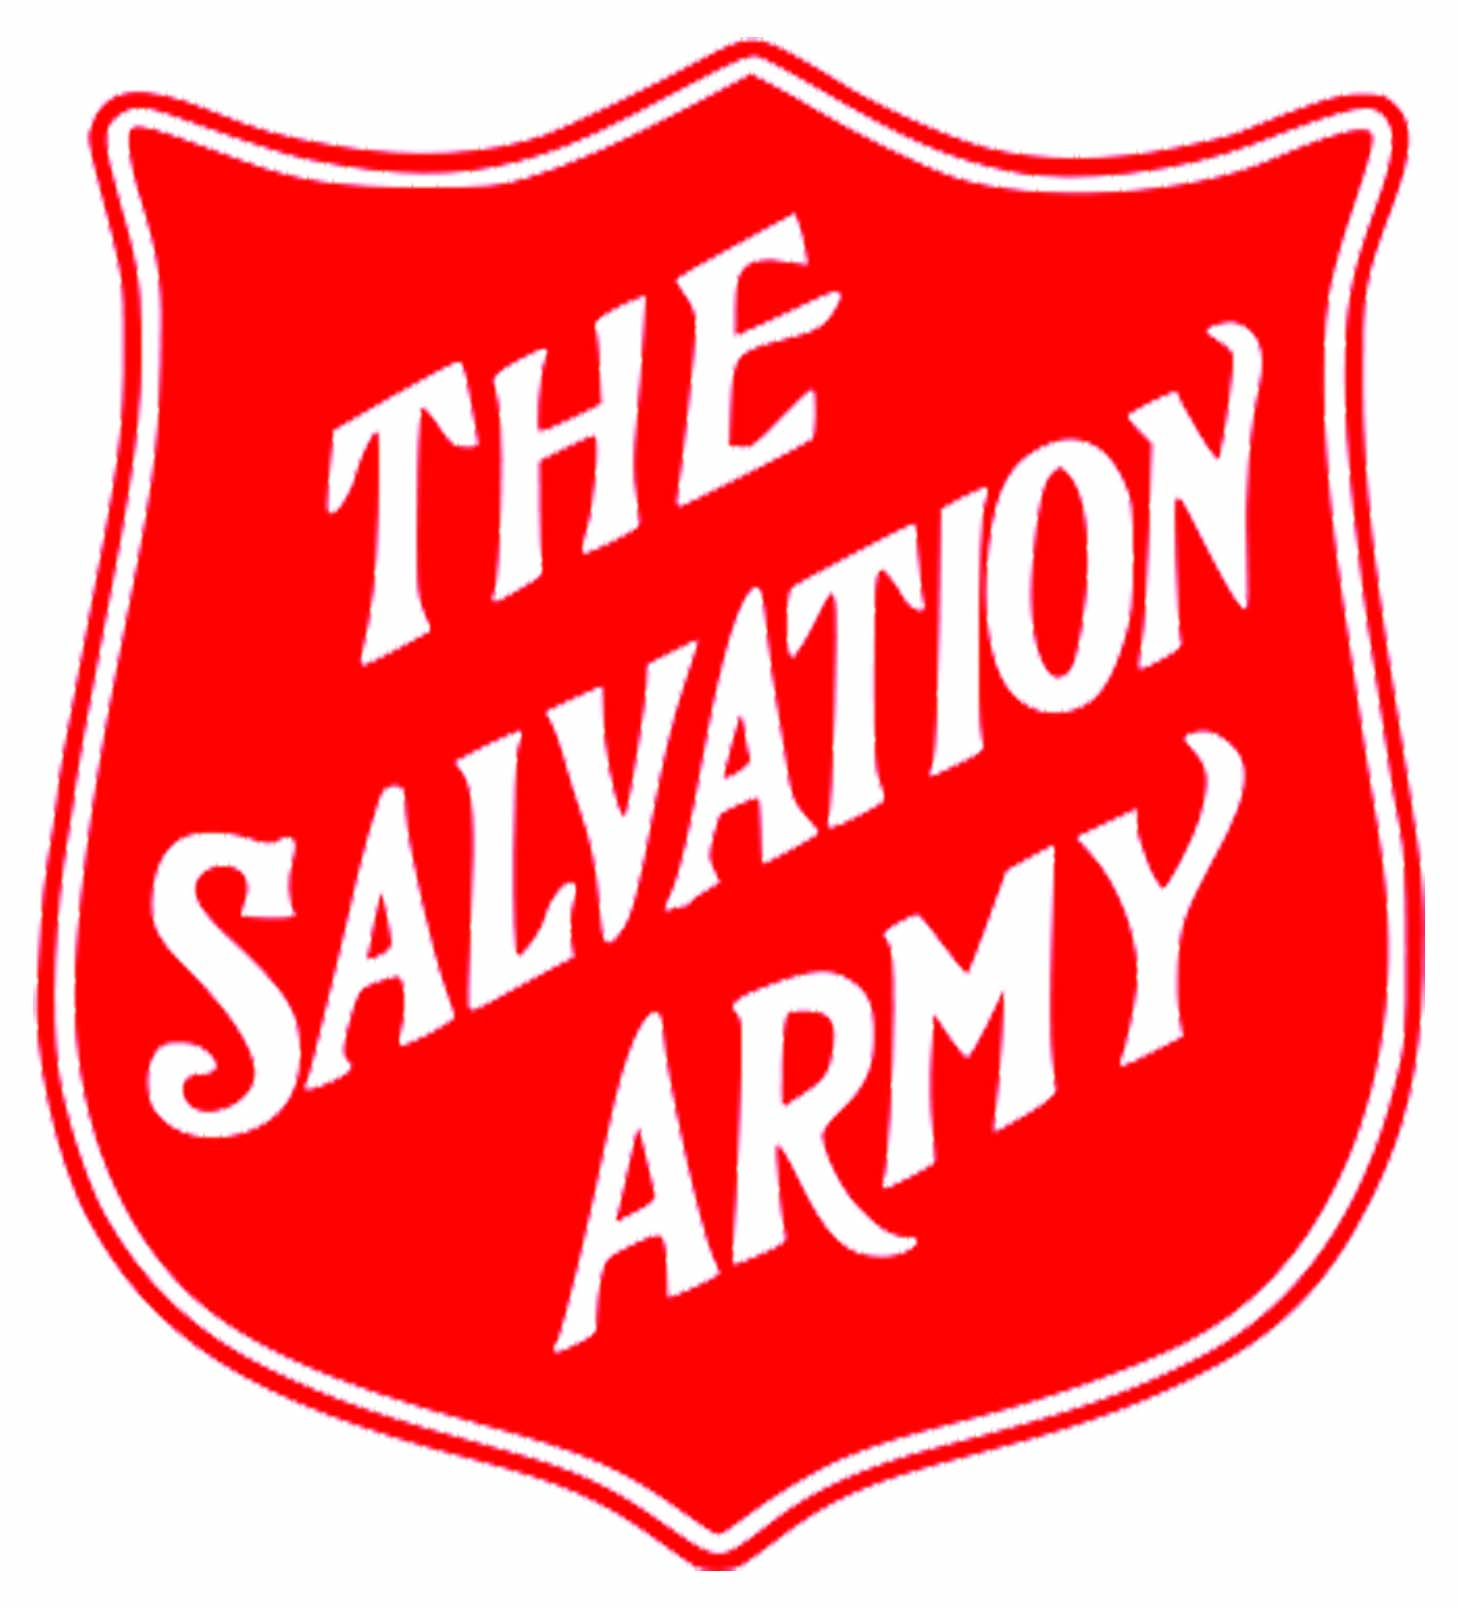 Furniture Donation Pick Up Veterans Govt pledges 5m to salvation army drug rehab programme Views: 712